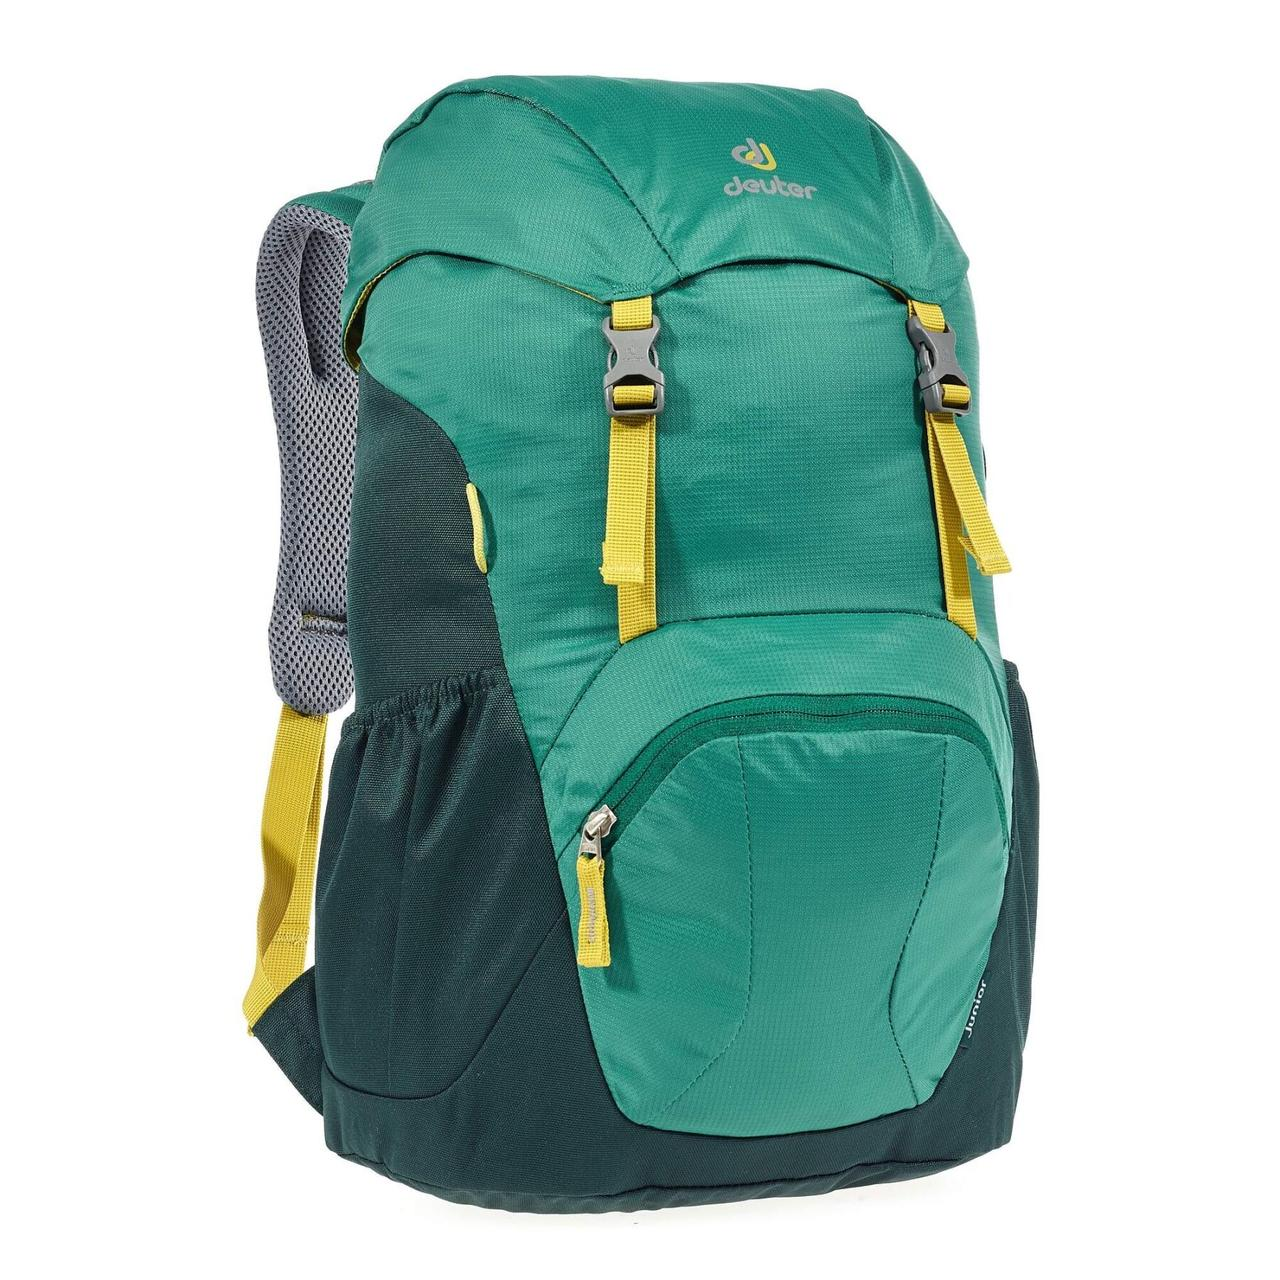 Рюкзак детский Deuter Junior alpinegreen-forest (3612519 2231)